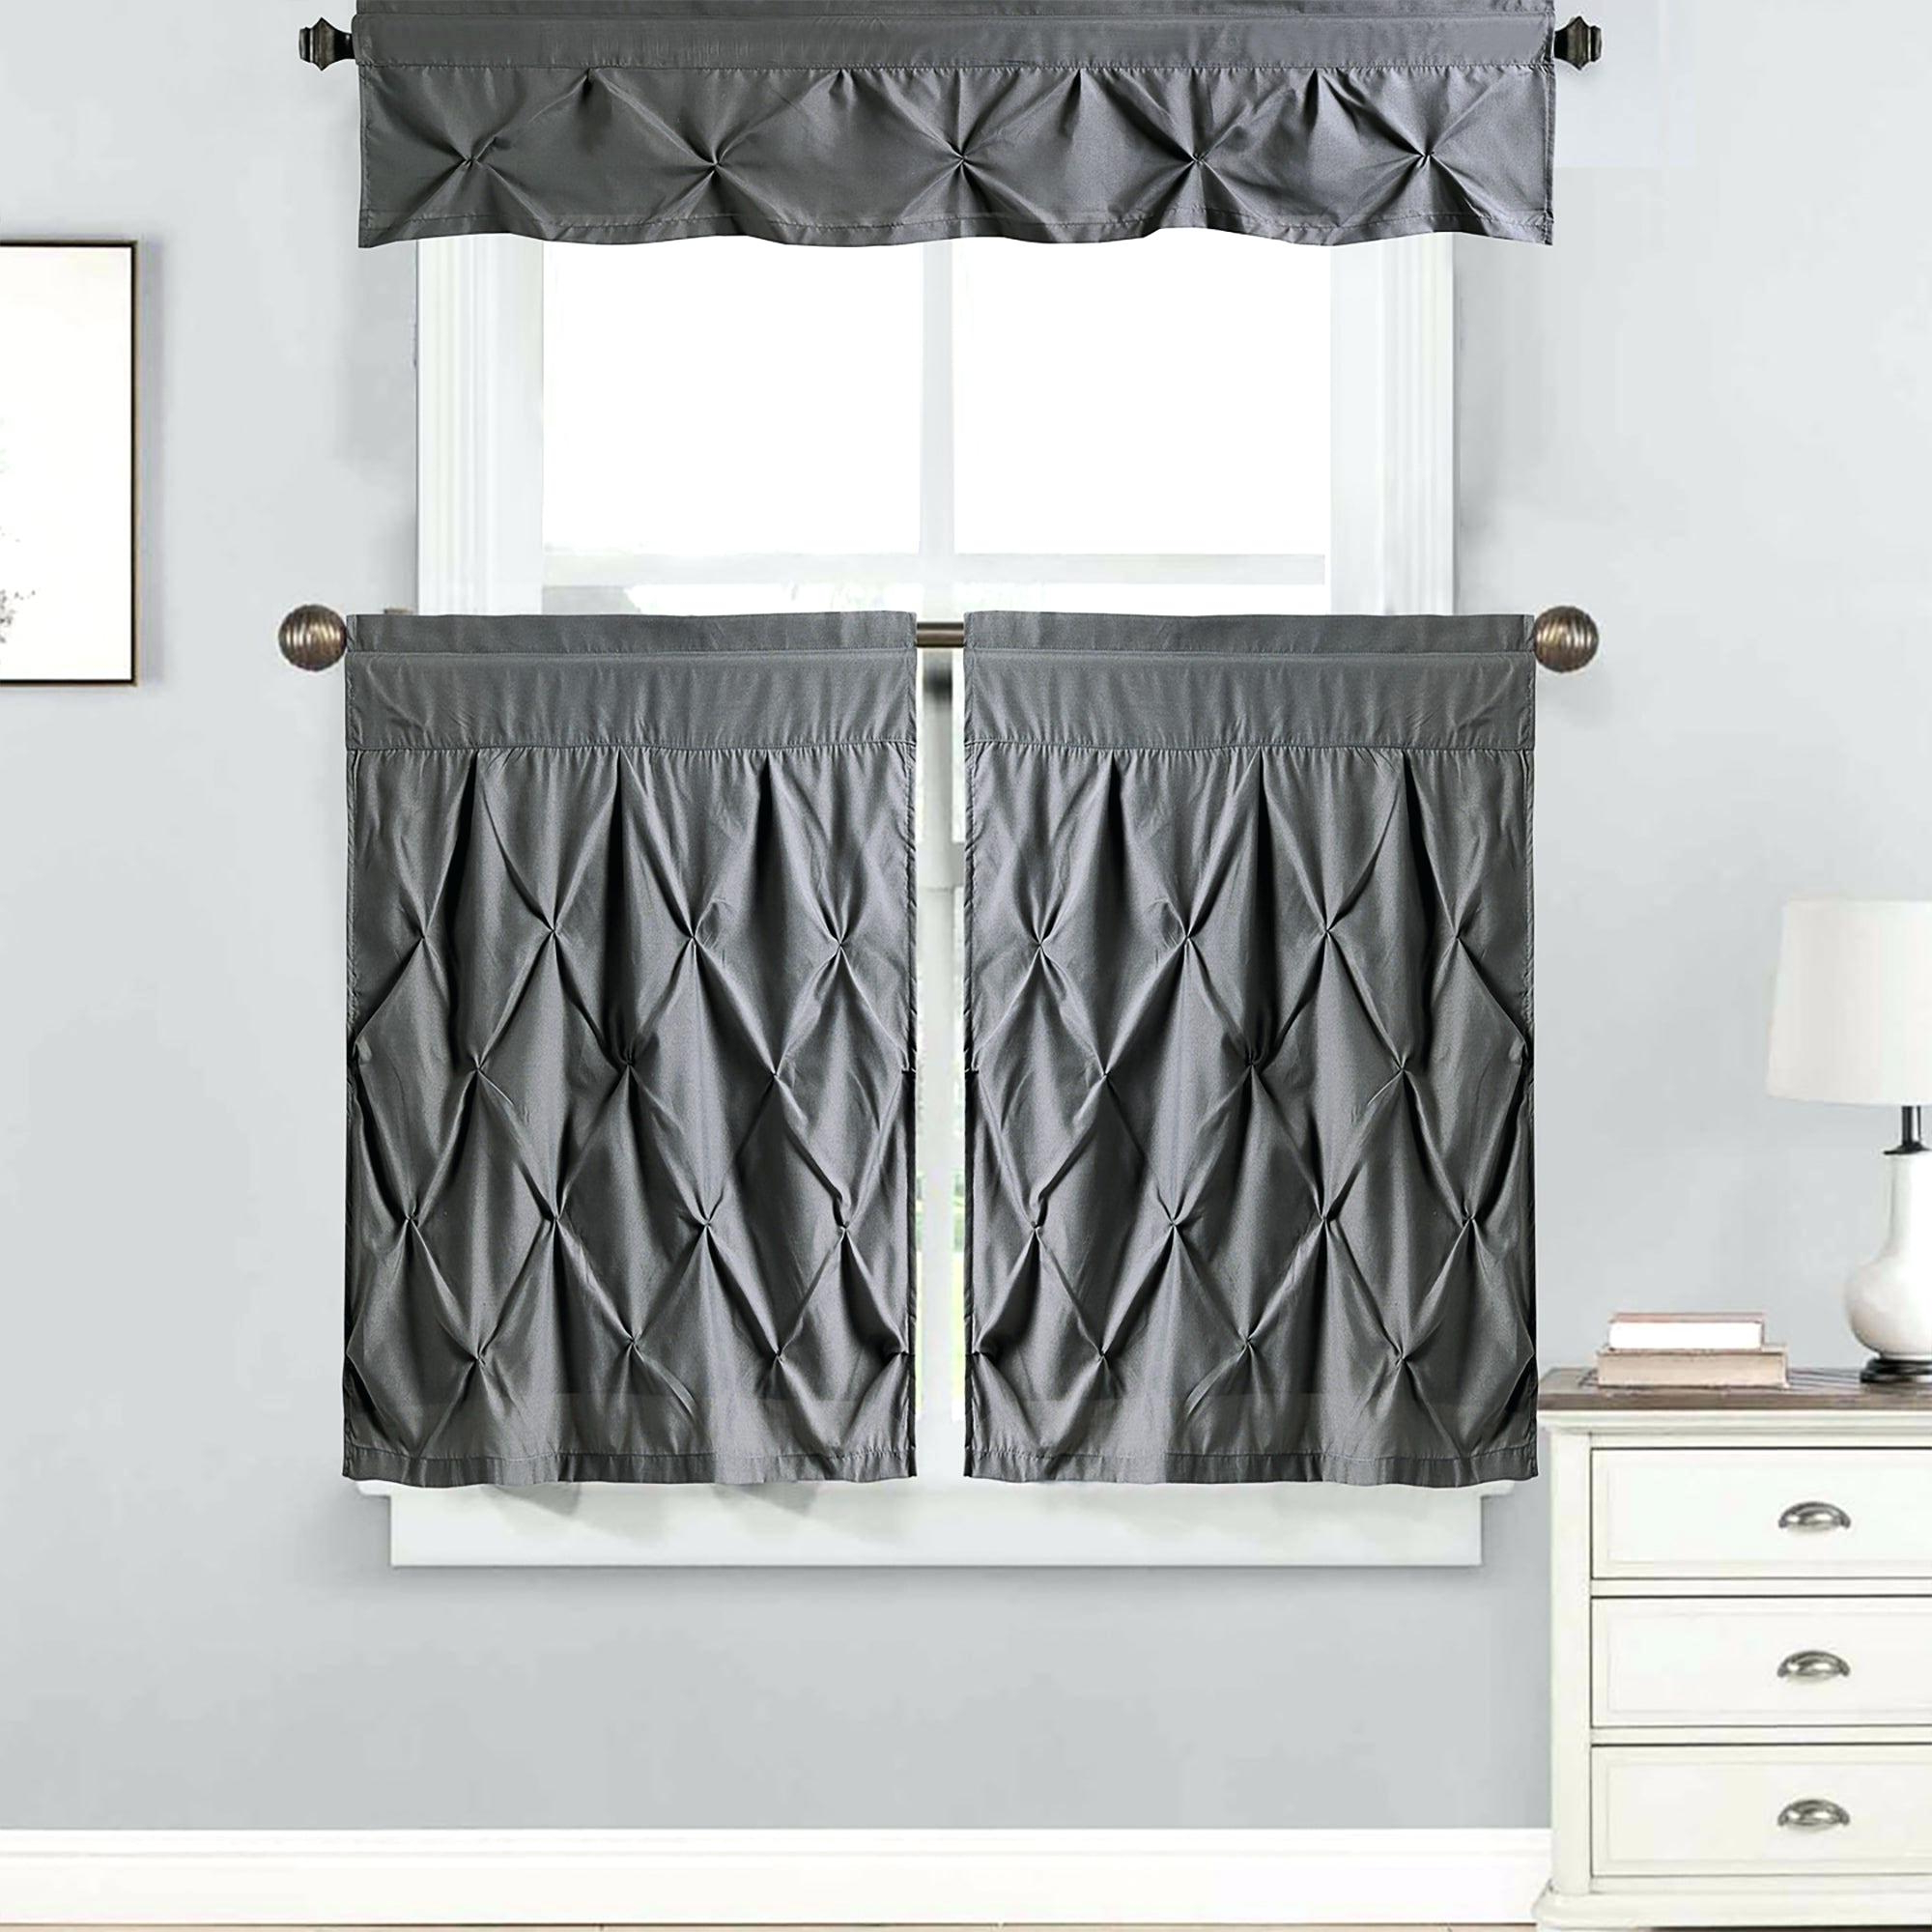 Curtain Sets With Valance – Mnkskin With Well Known Forest Valance And Tier Pair Curtains (View 19 of 20)